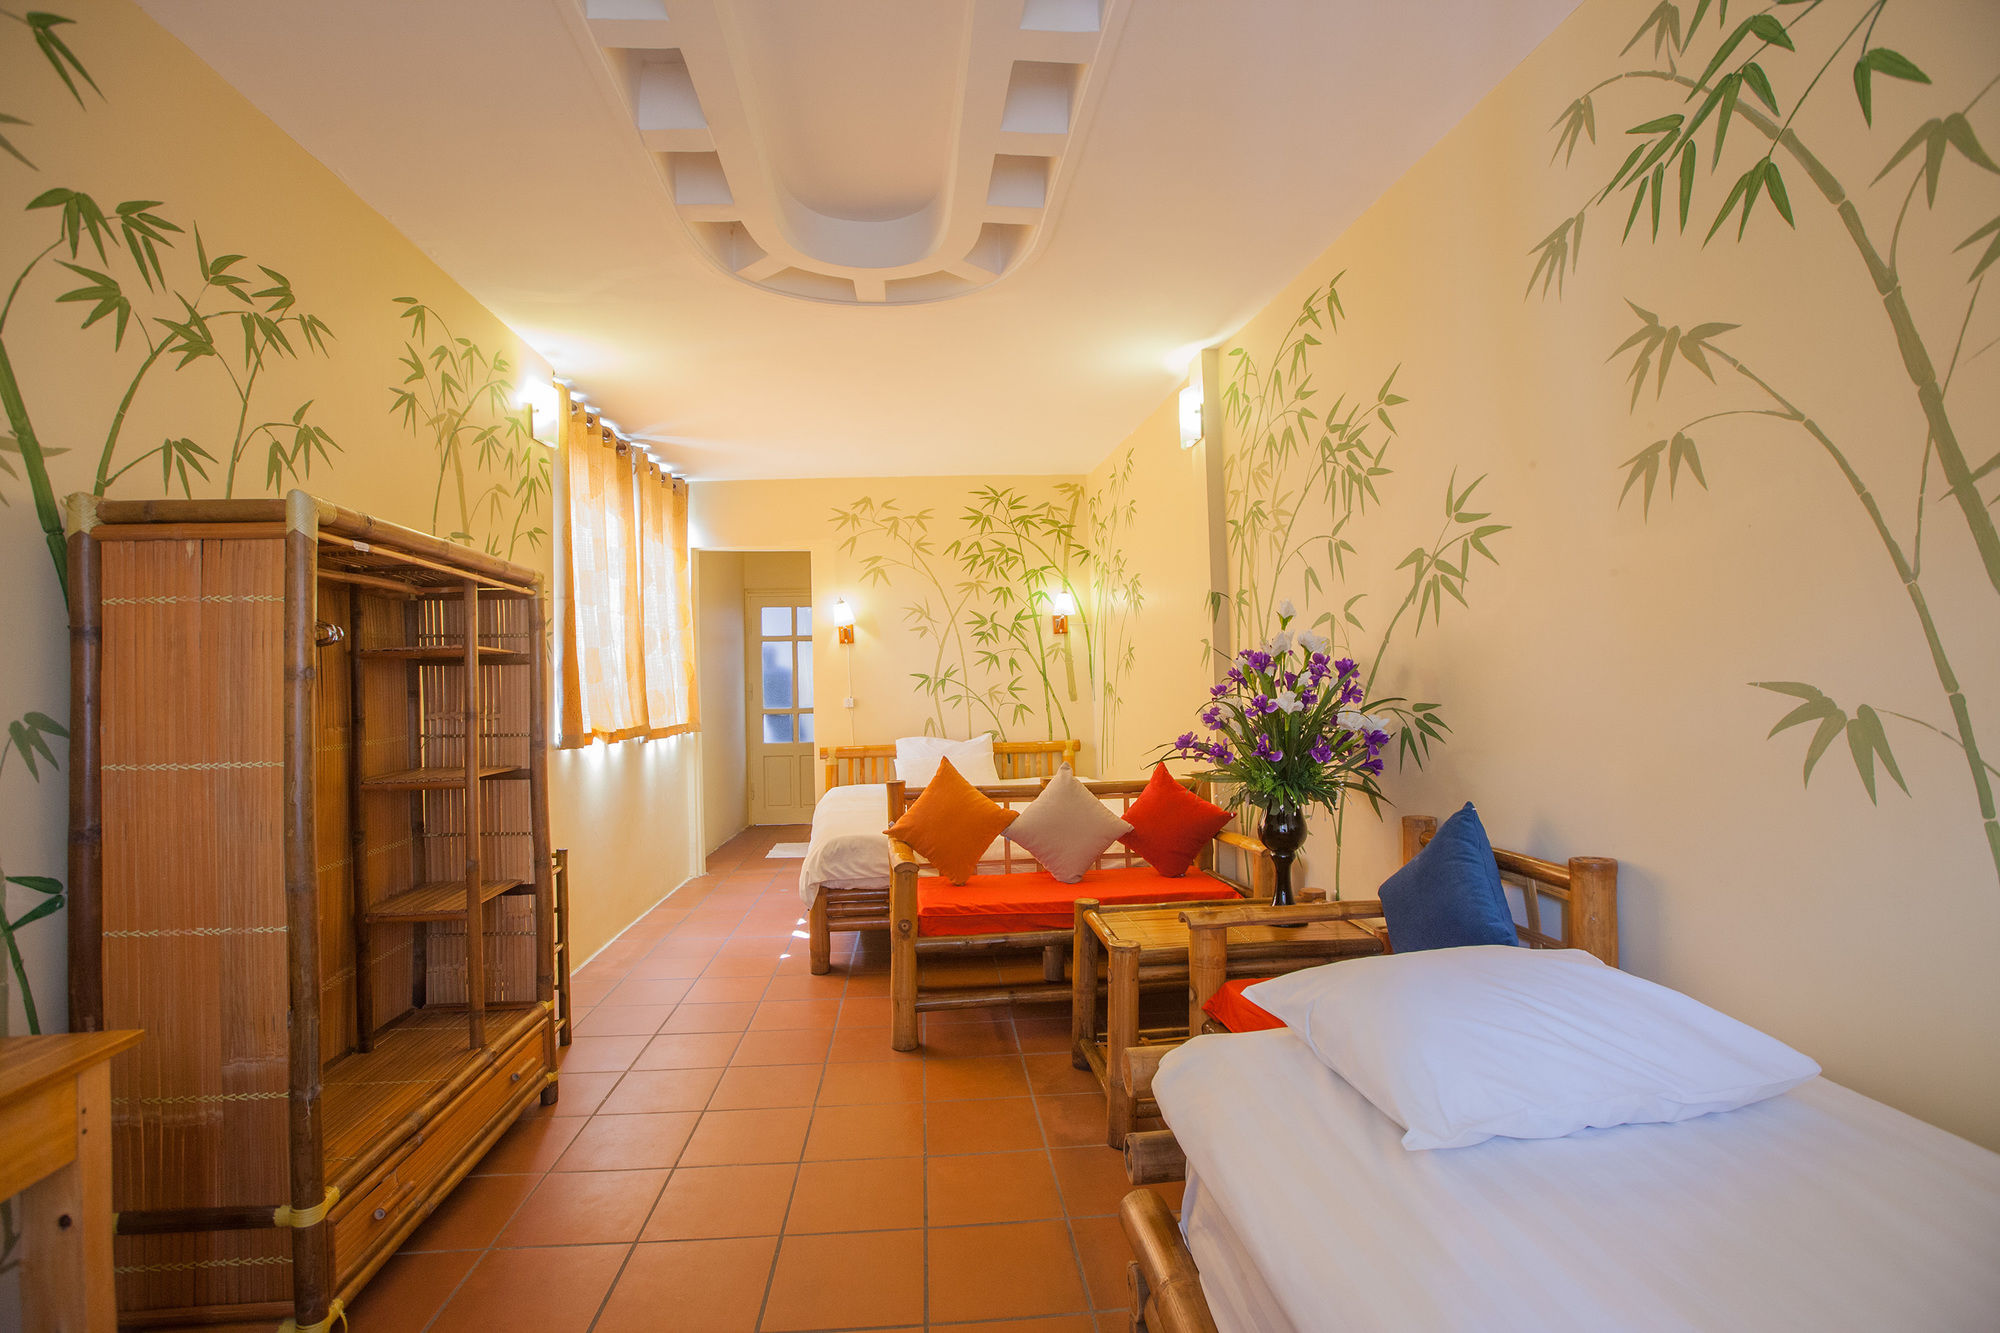 Gallery image of Bamboo Hotel